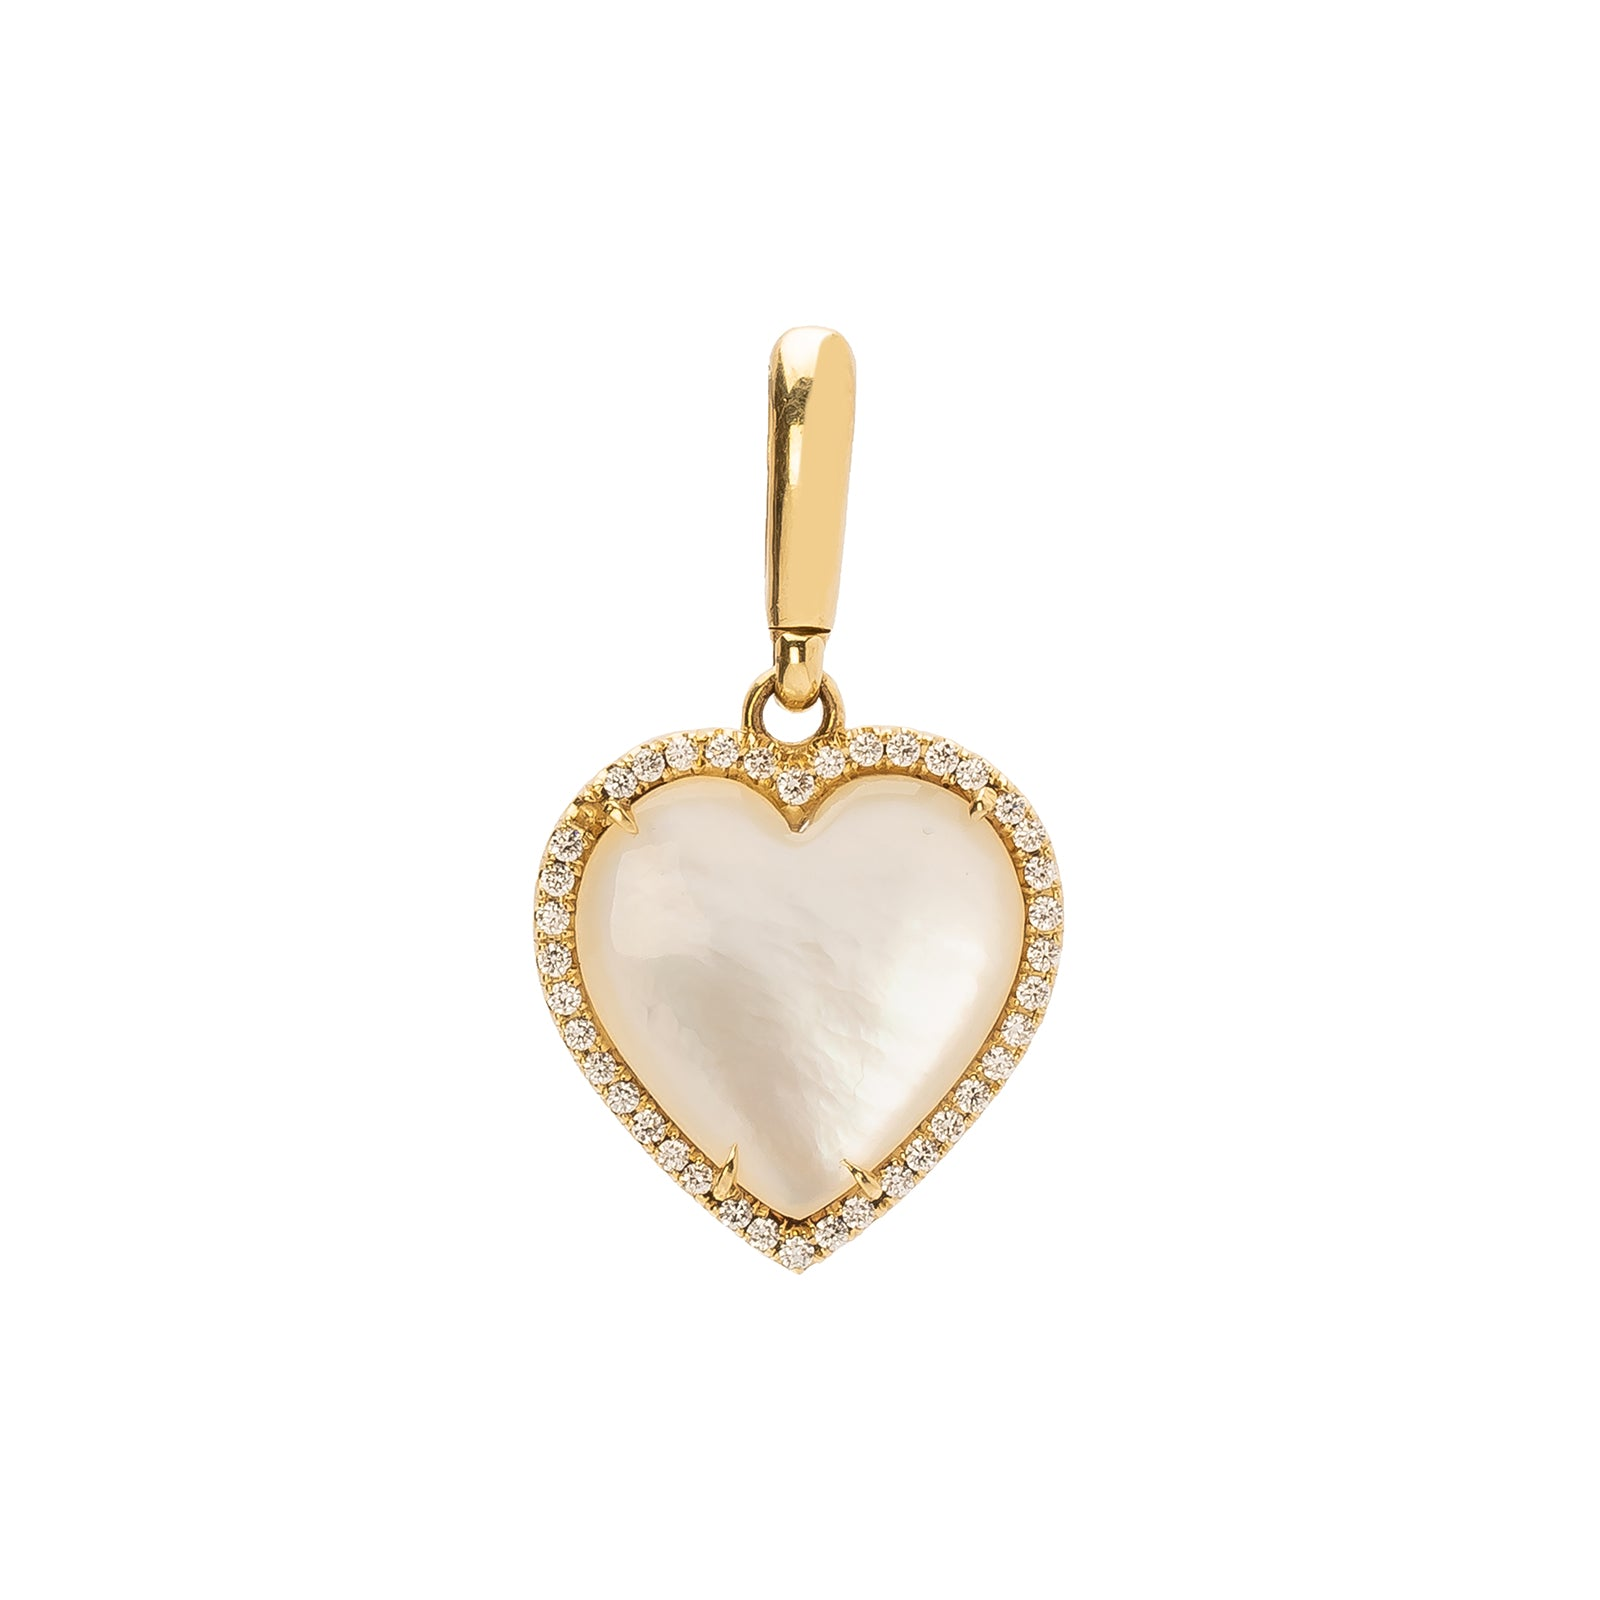 Jenna Blake Heart in Diamond Frame Pendant - Pearl - Charms & Pendants - Broken English Jewelry